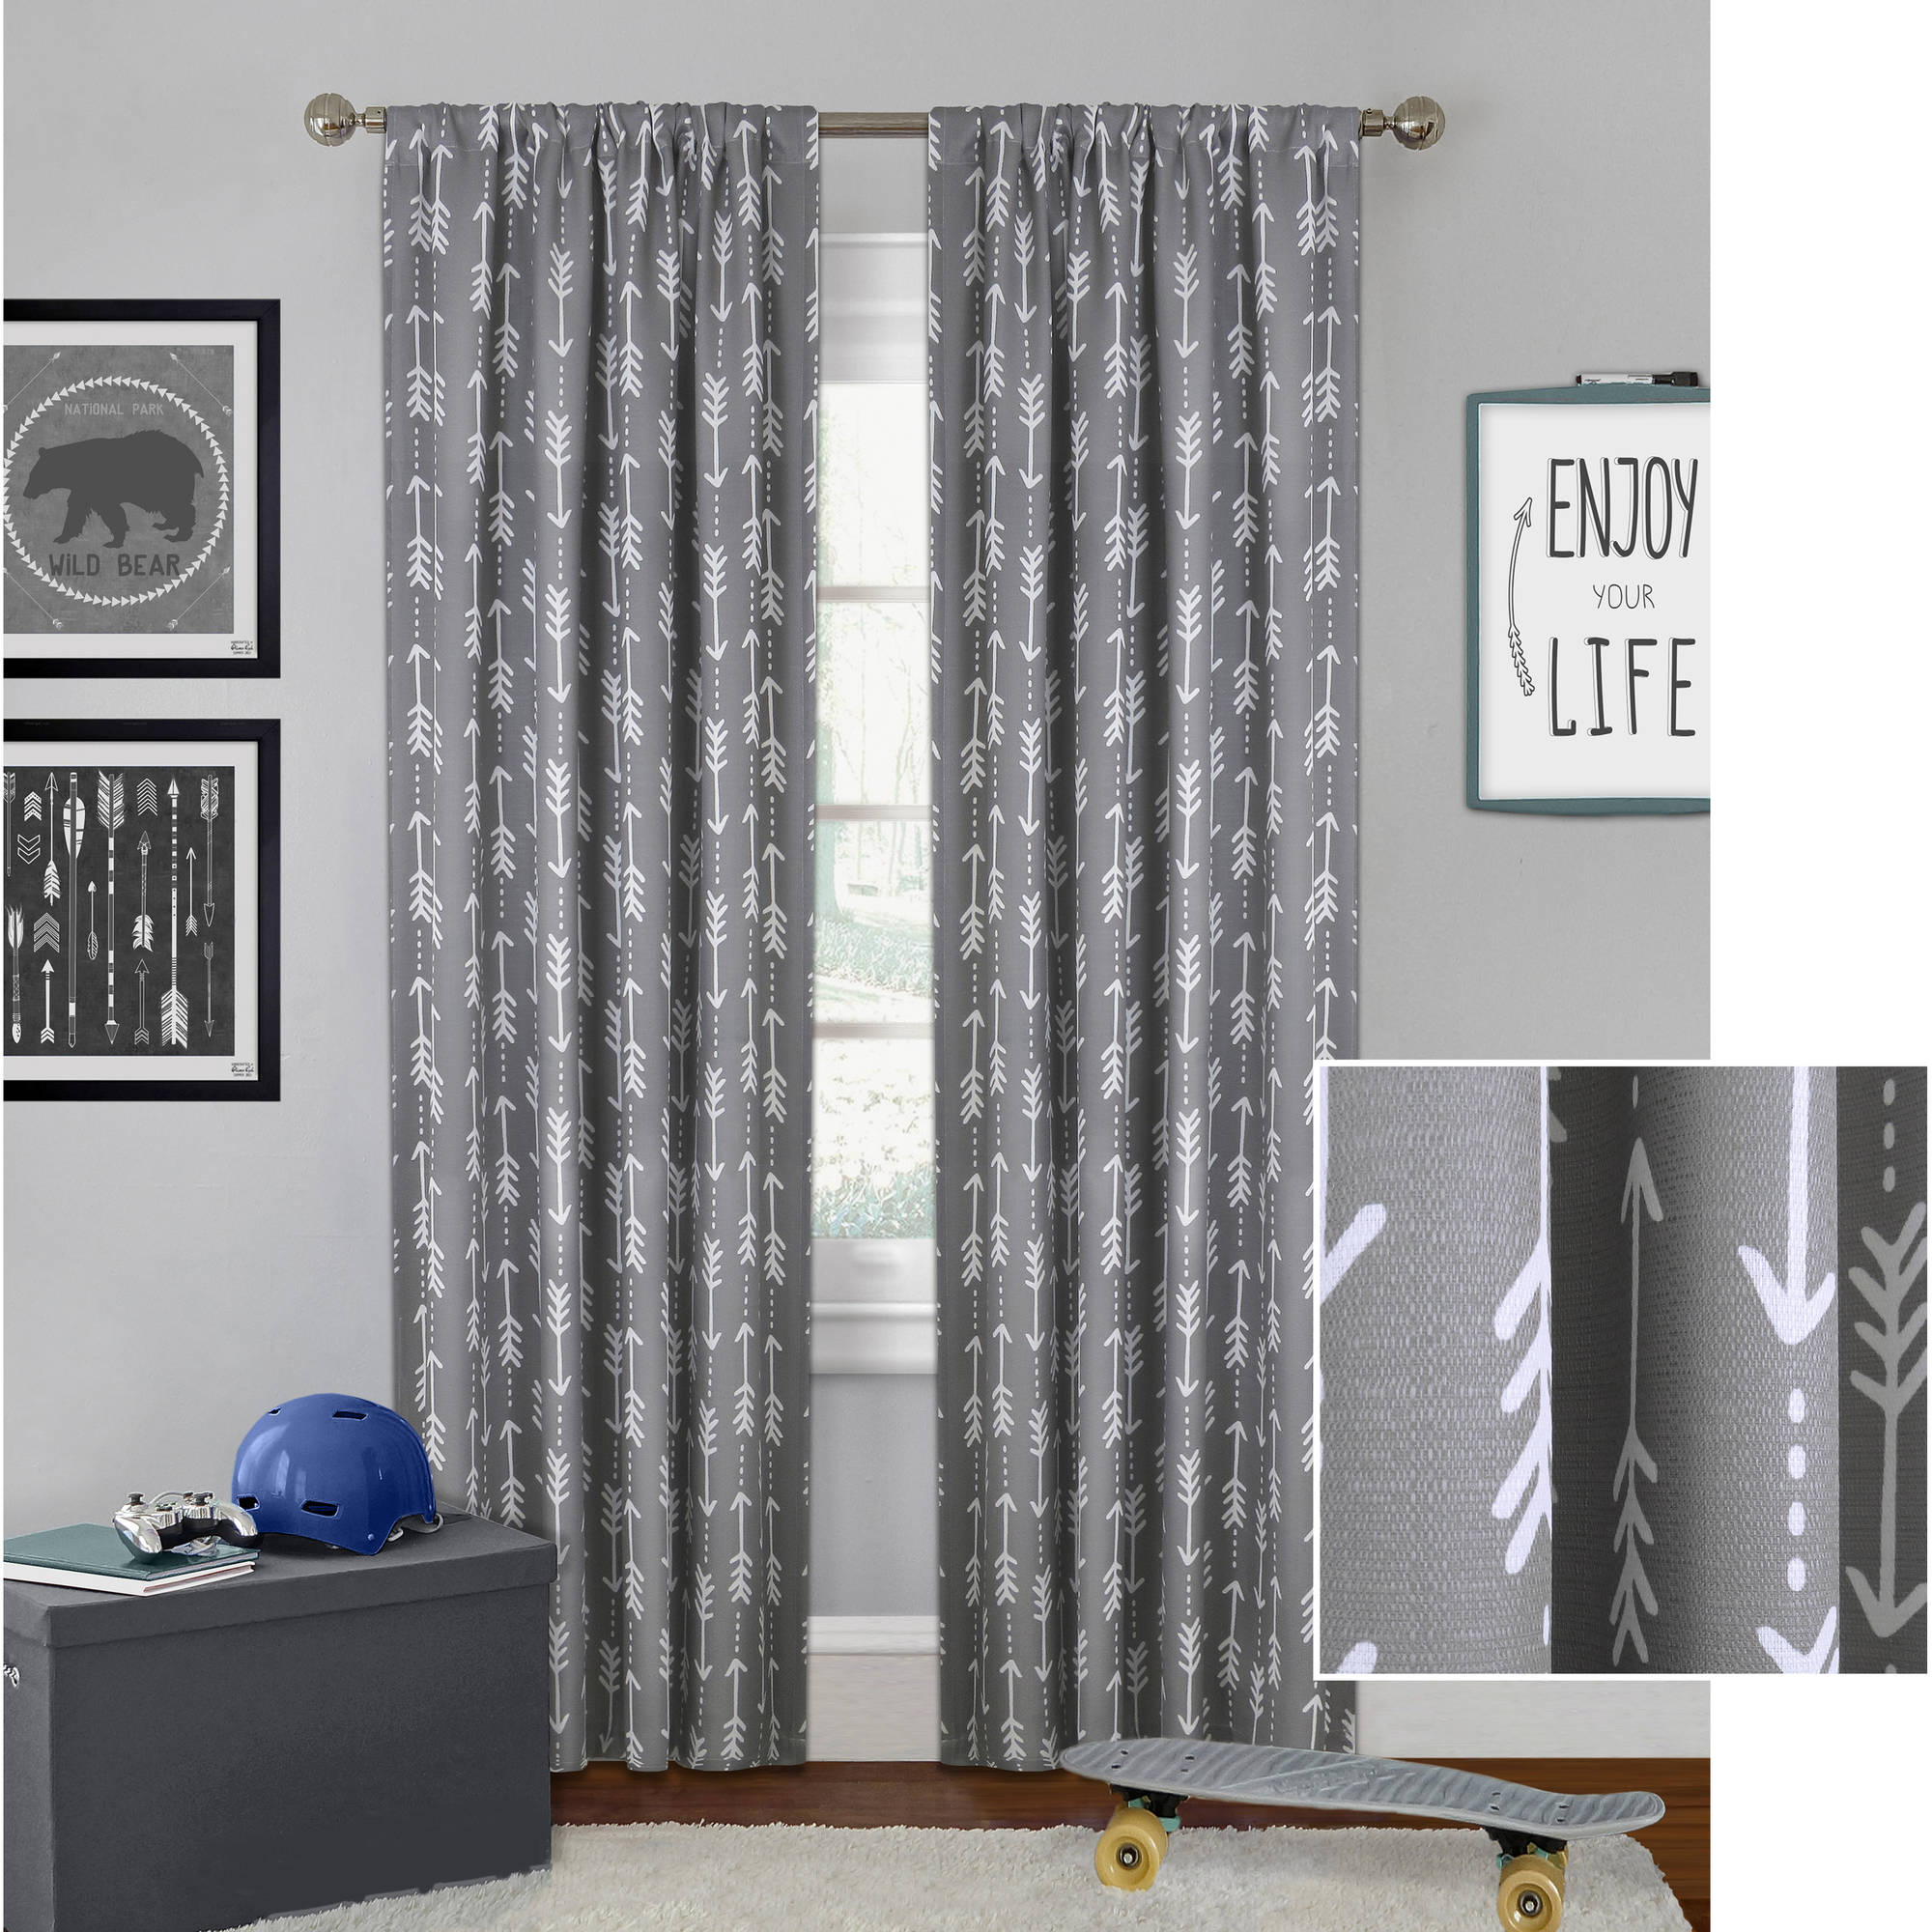 types of boy curtains to be hung goodworksfurniture. Black Bedroom Furniture Sets. Home Design Ideas